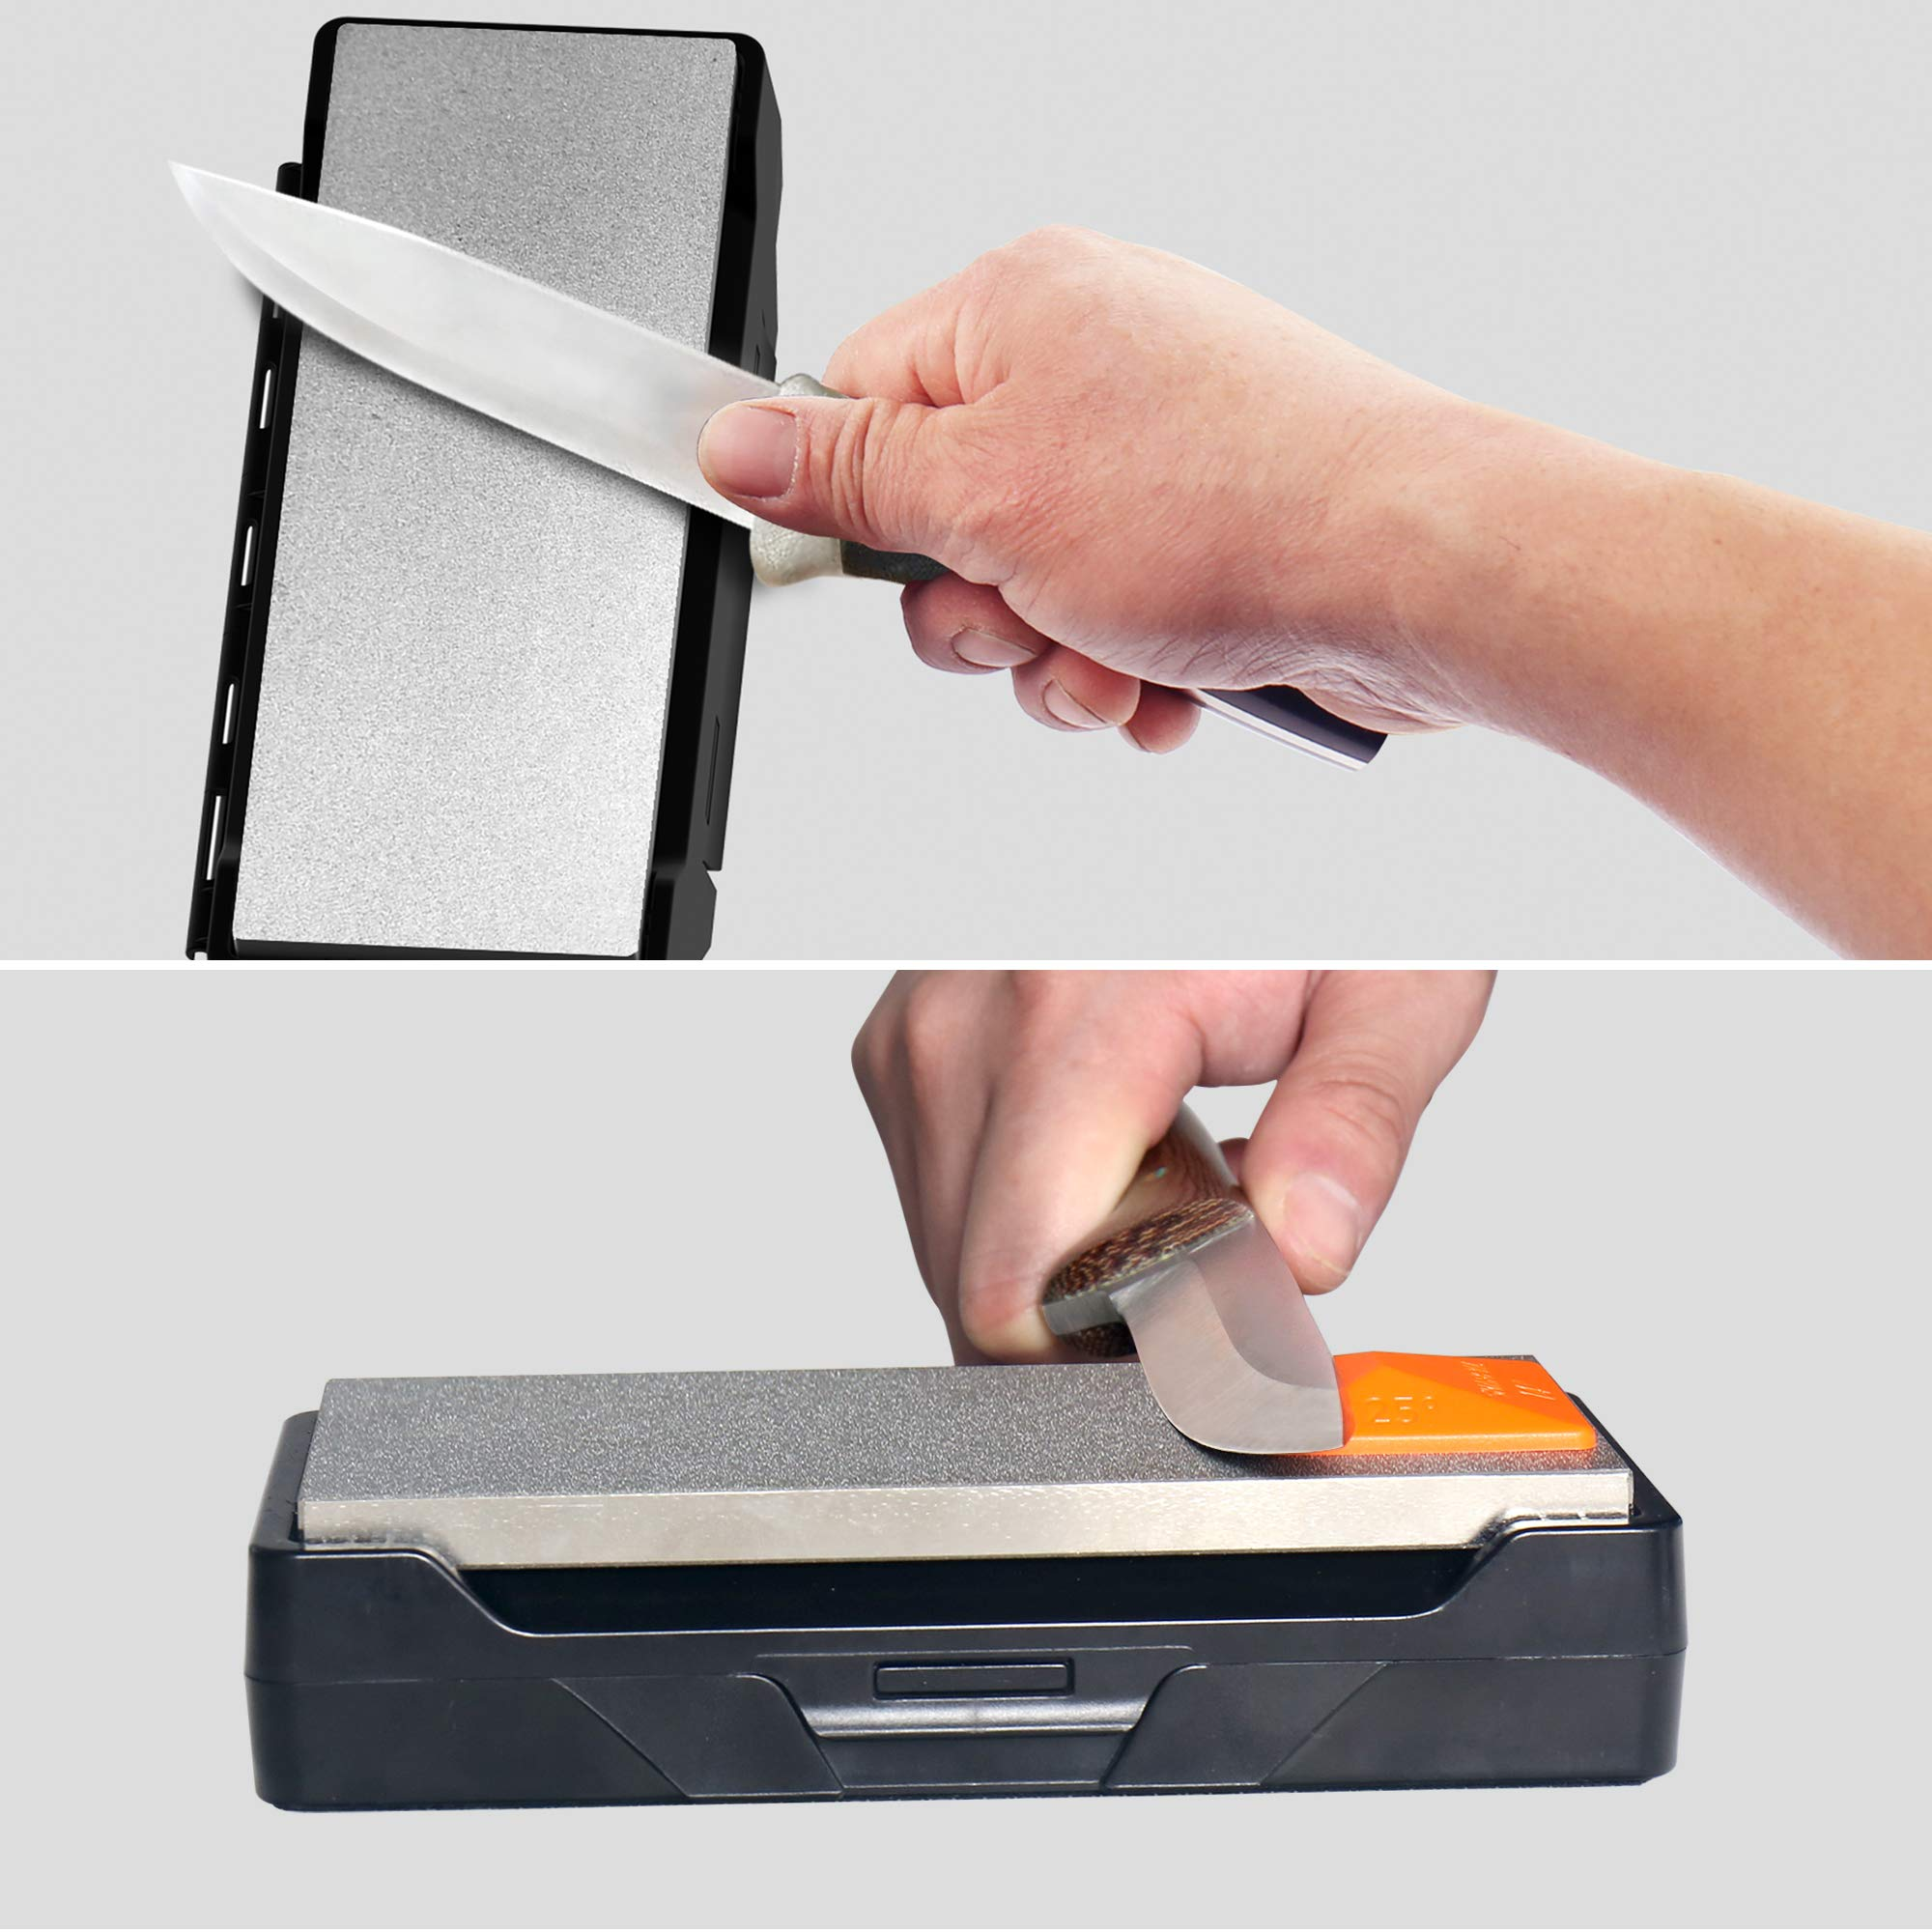 SHARPAL 156N Diamond Whetstone Knife Sharpener with Storage Base | 2 Side Grit Coarse 325 / Extra Fine 1200 | Diamond Sharpening Stone | NonSlip Base & Angle Guide (6 in. x 2.5 in.) by SHARPAL (Image #3)